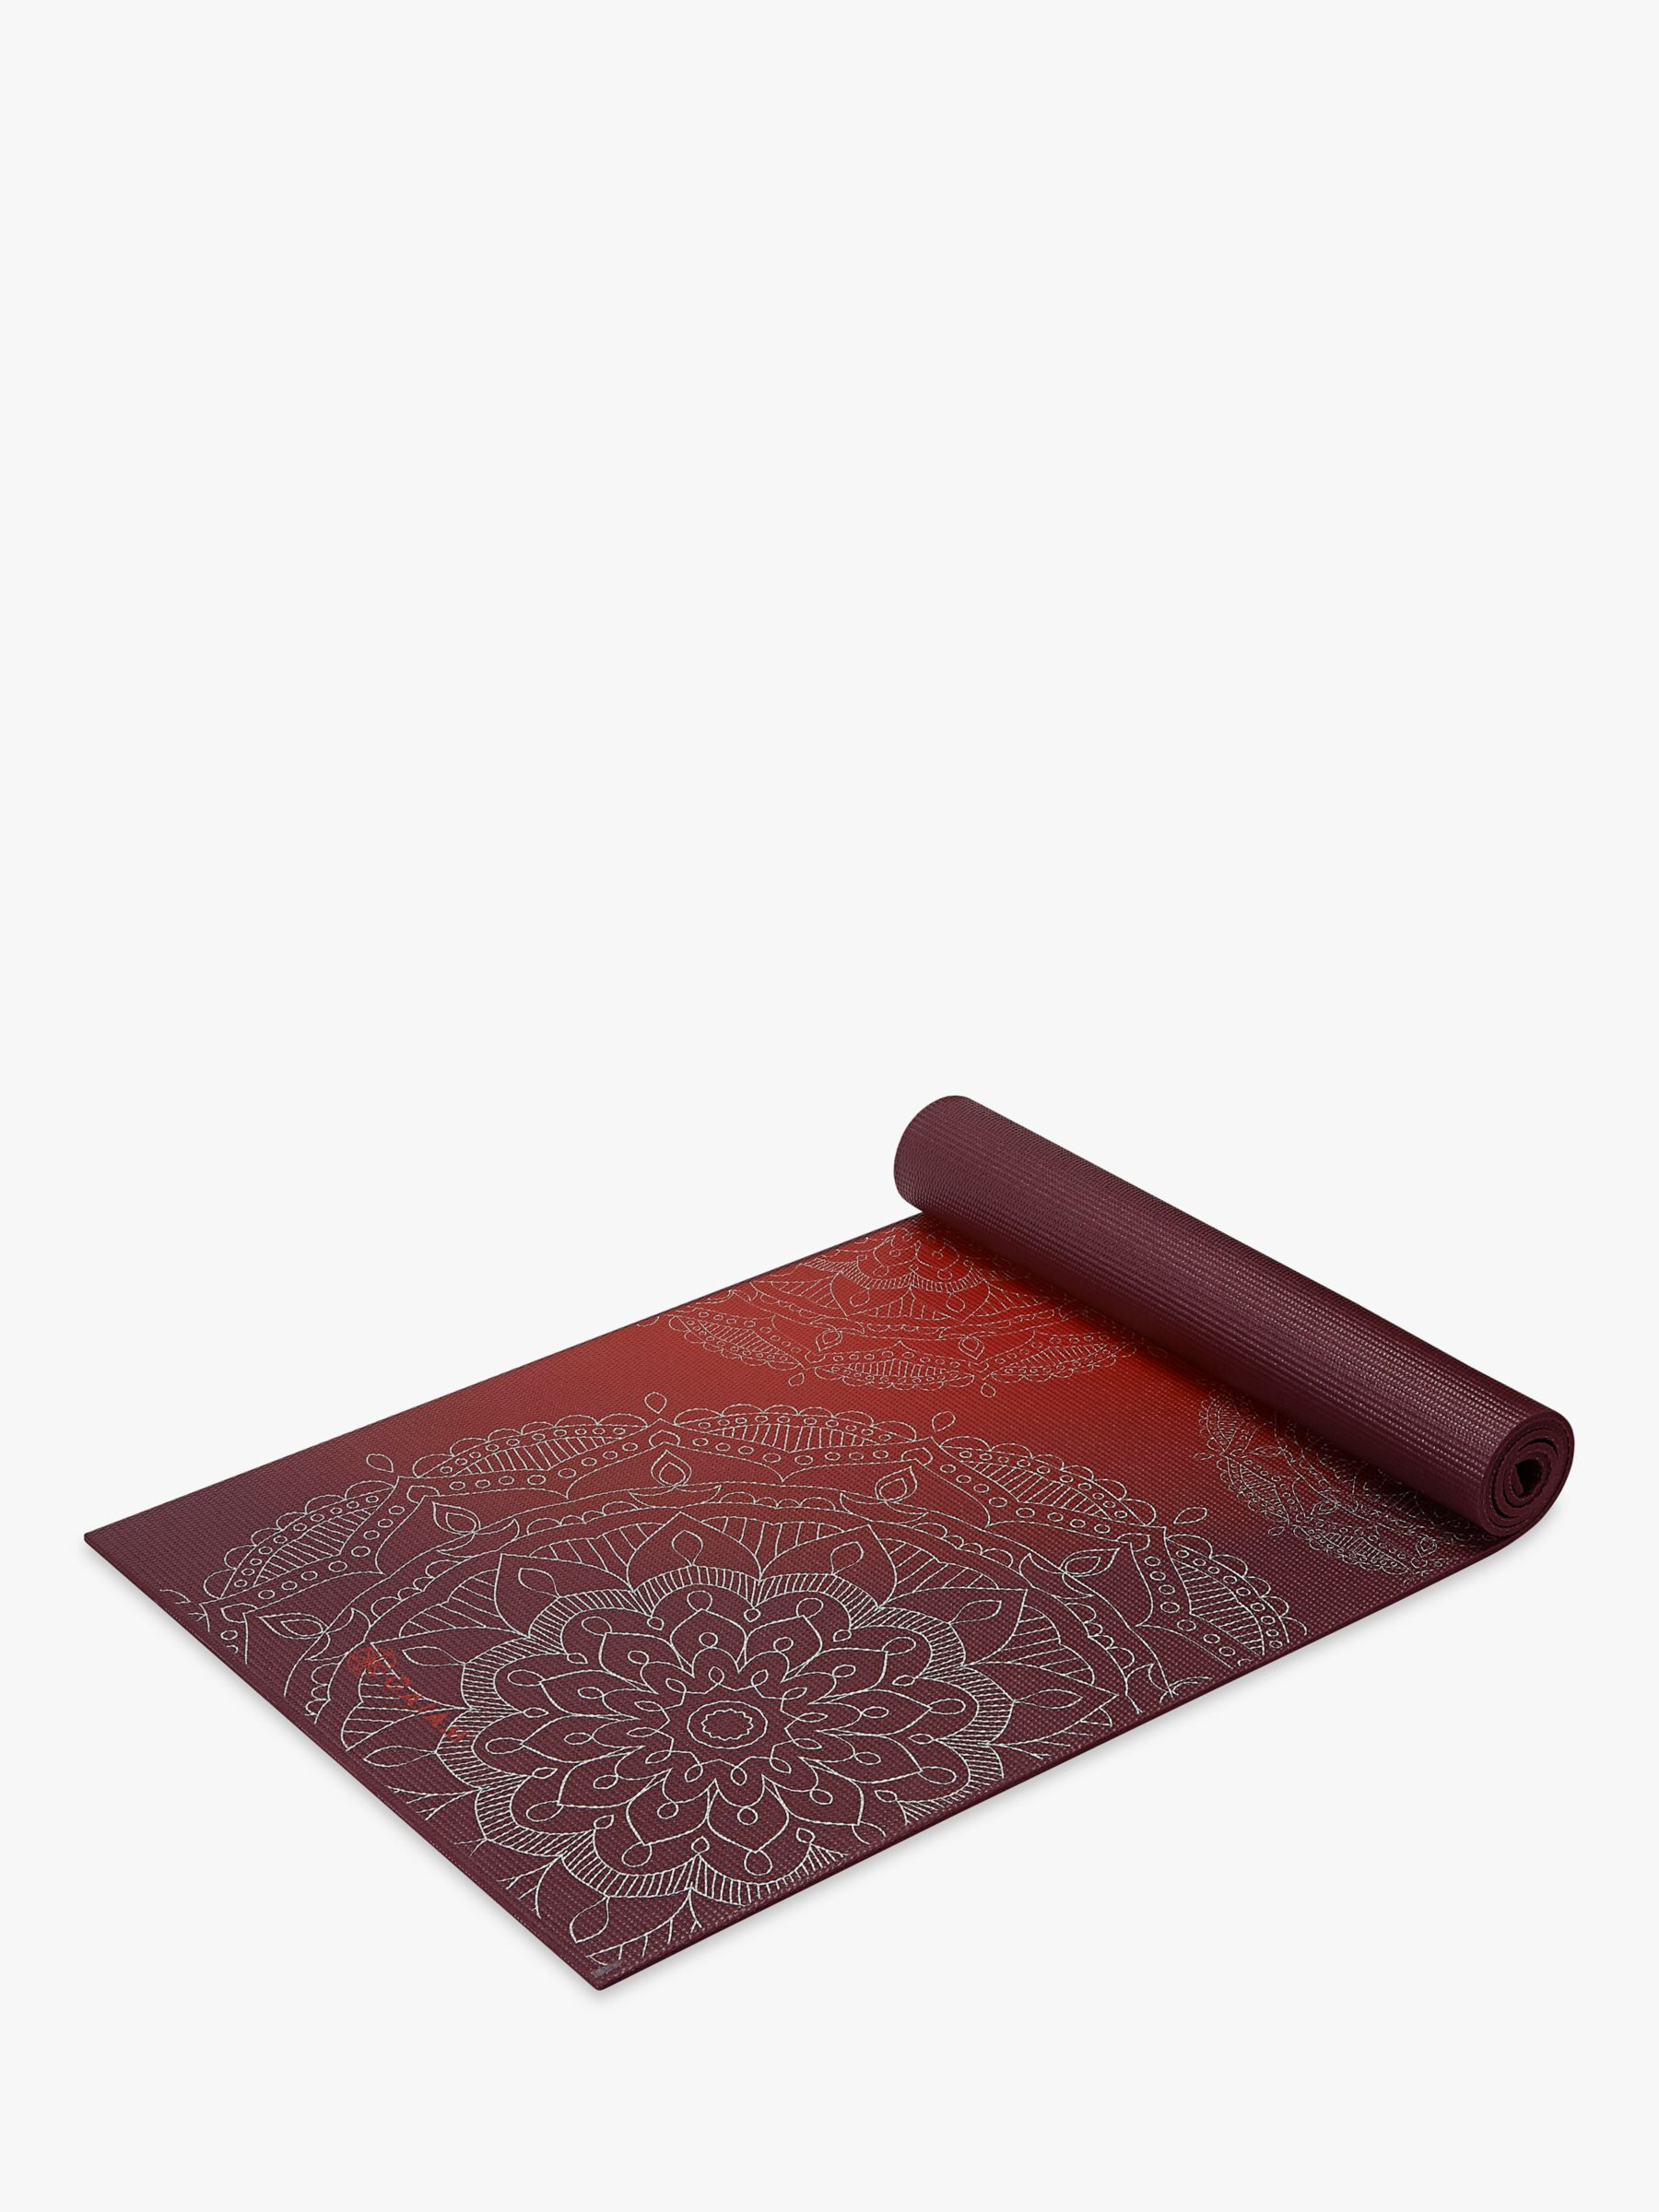 Gaiam Premium Metallic Sunset 6mm Yoga Mat, Red